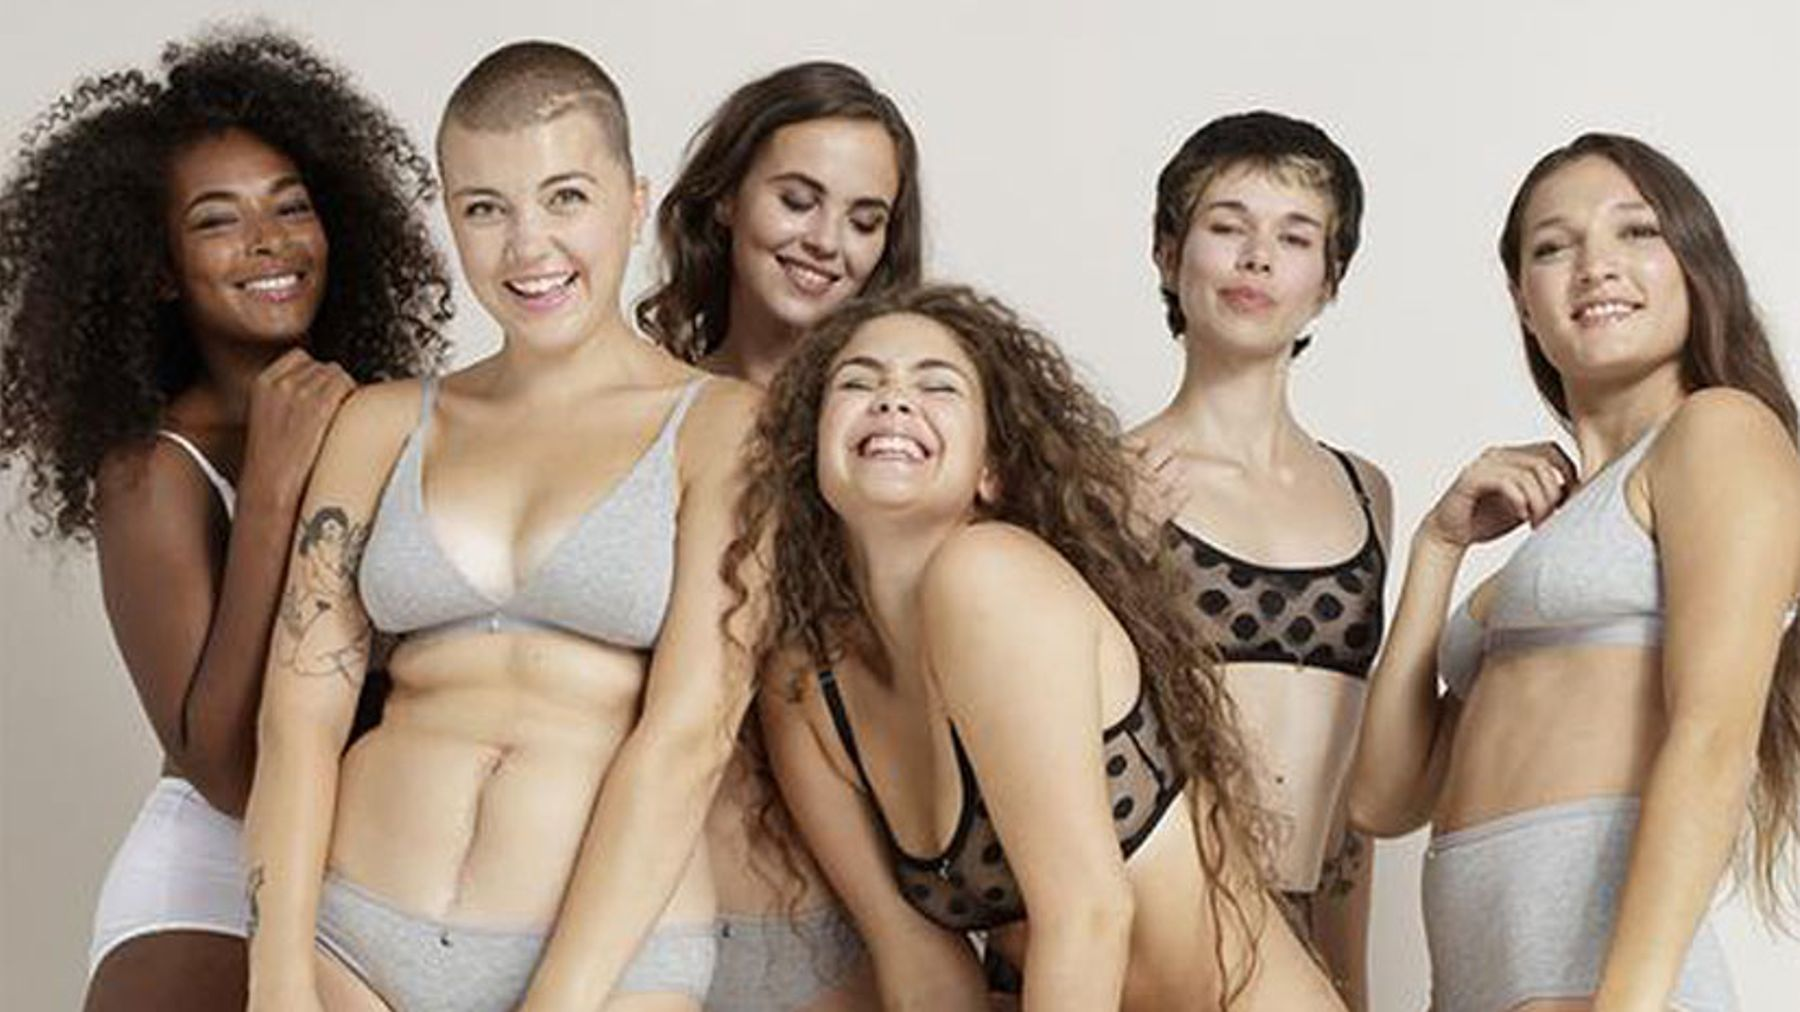 0d1acc49f The Feminist Lingerie Brands That Champion Women. The politics of pants is  changing